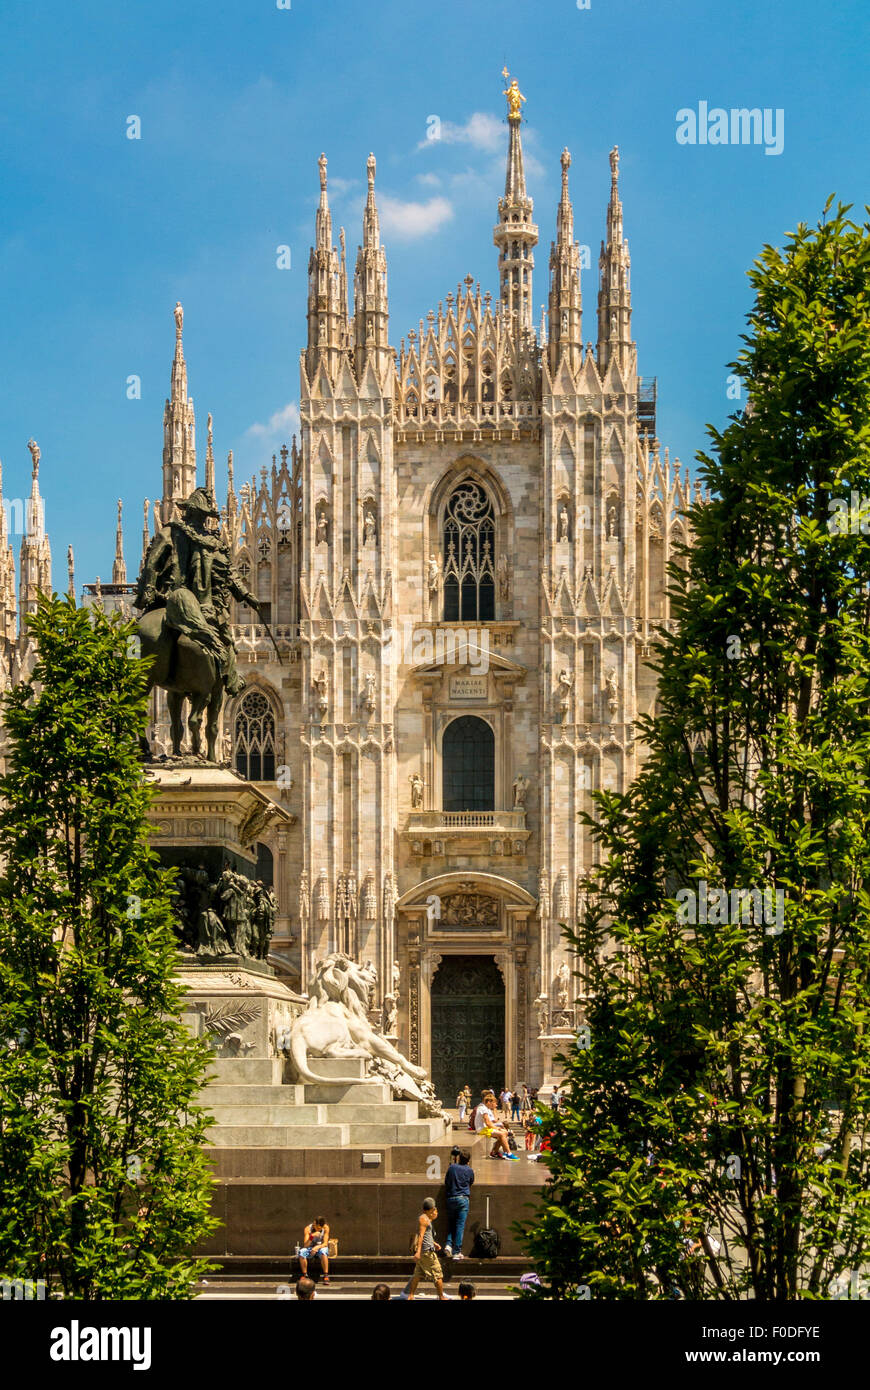 Milan Cathedral  with King Victor's statue and trees in the foreground. Milan Italy - Stock Image